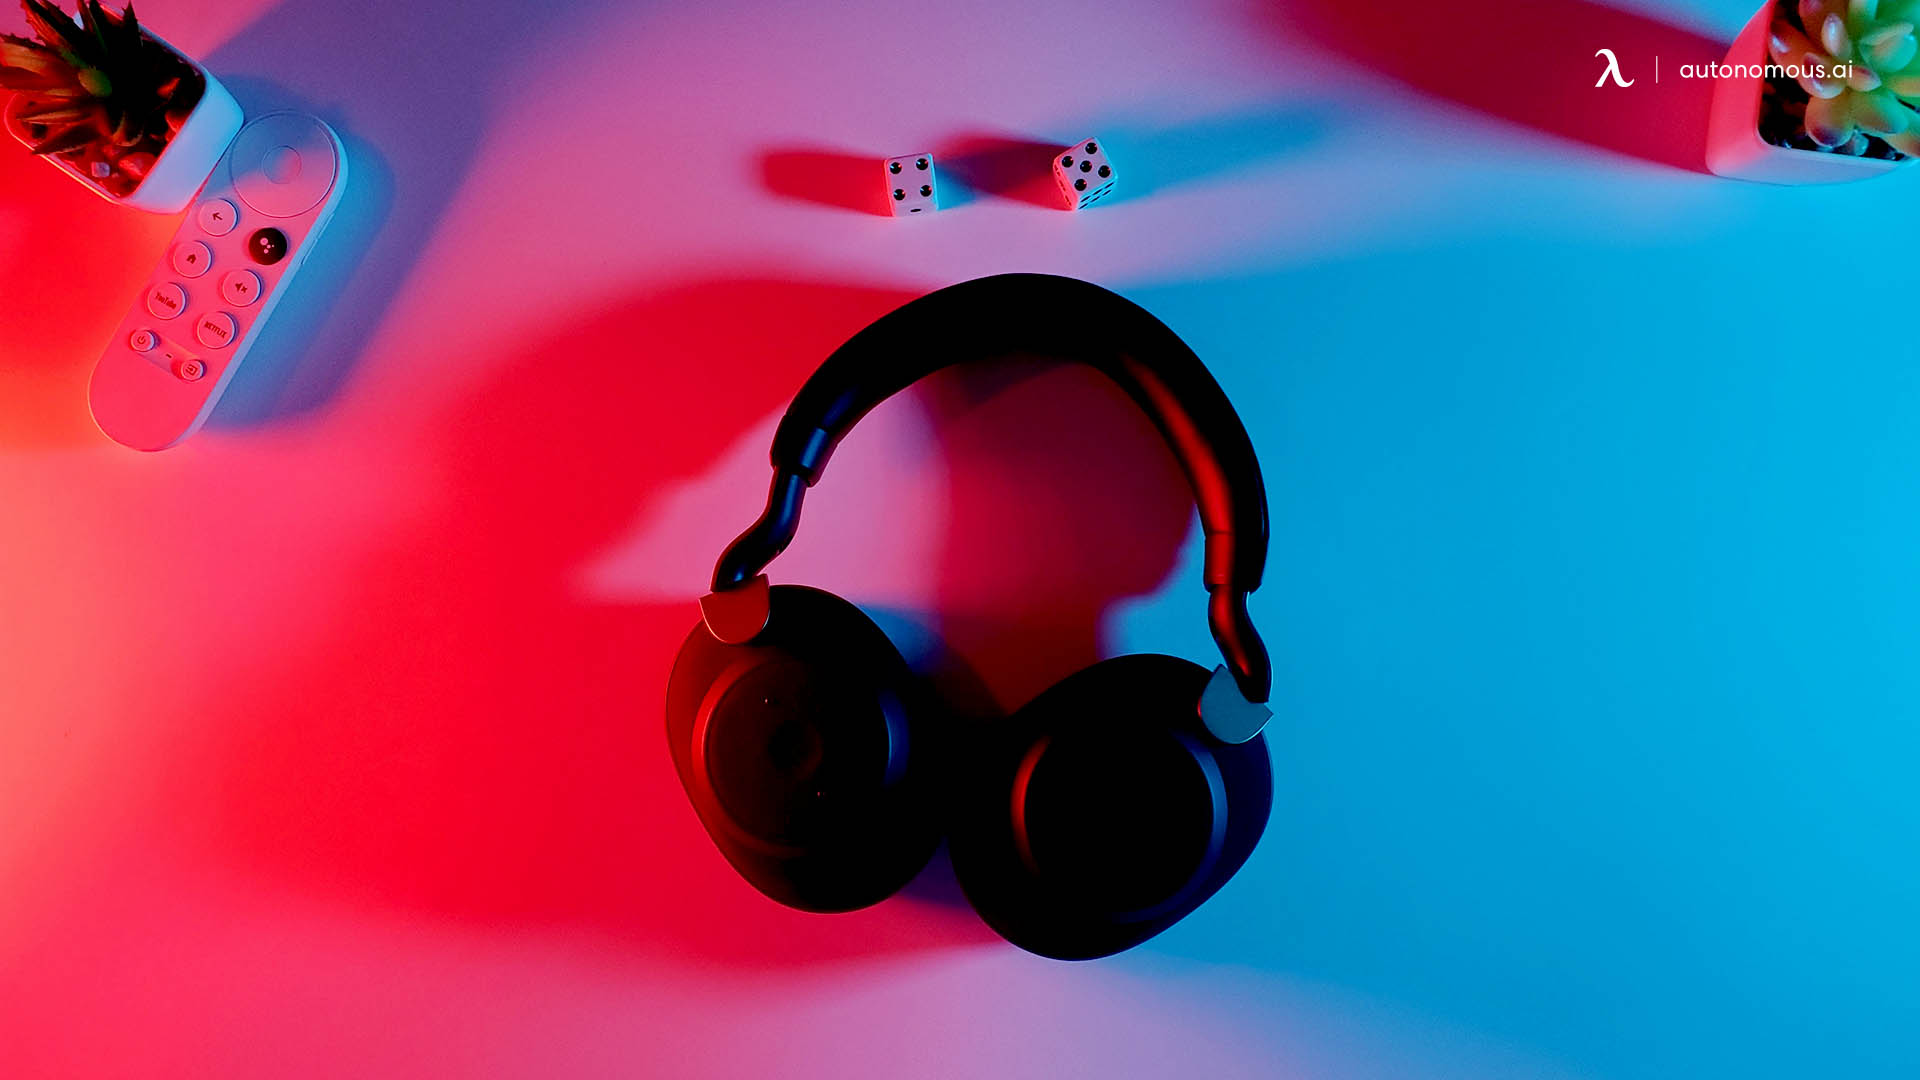 Get the right headphones